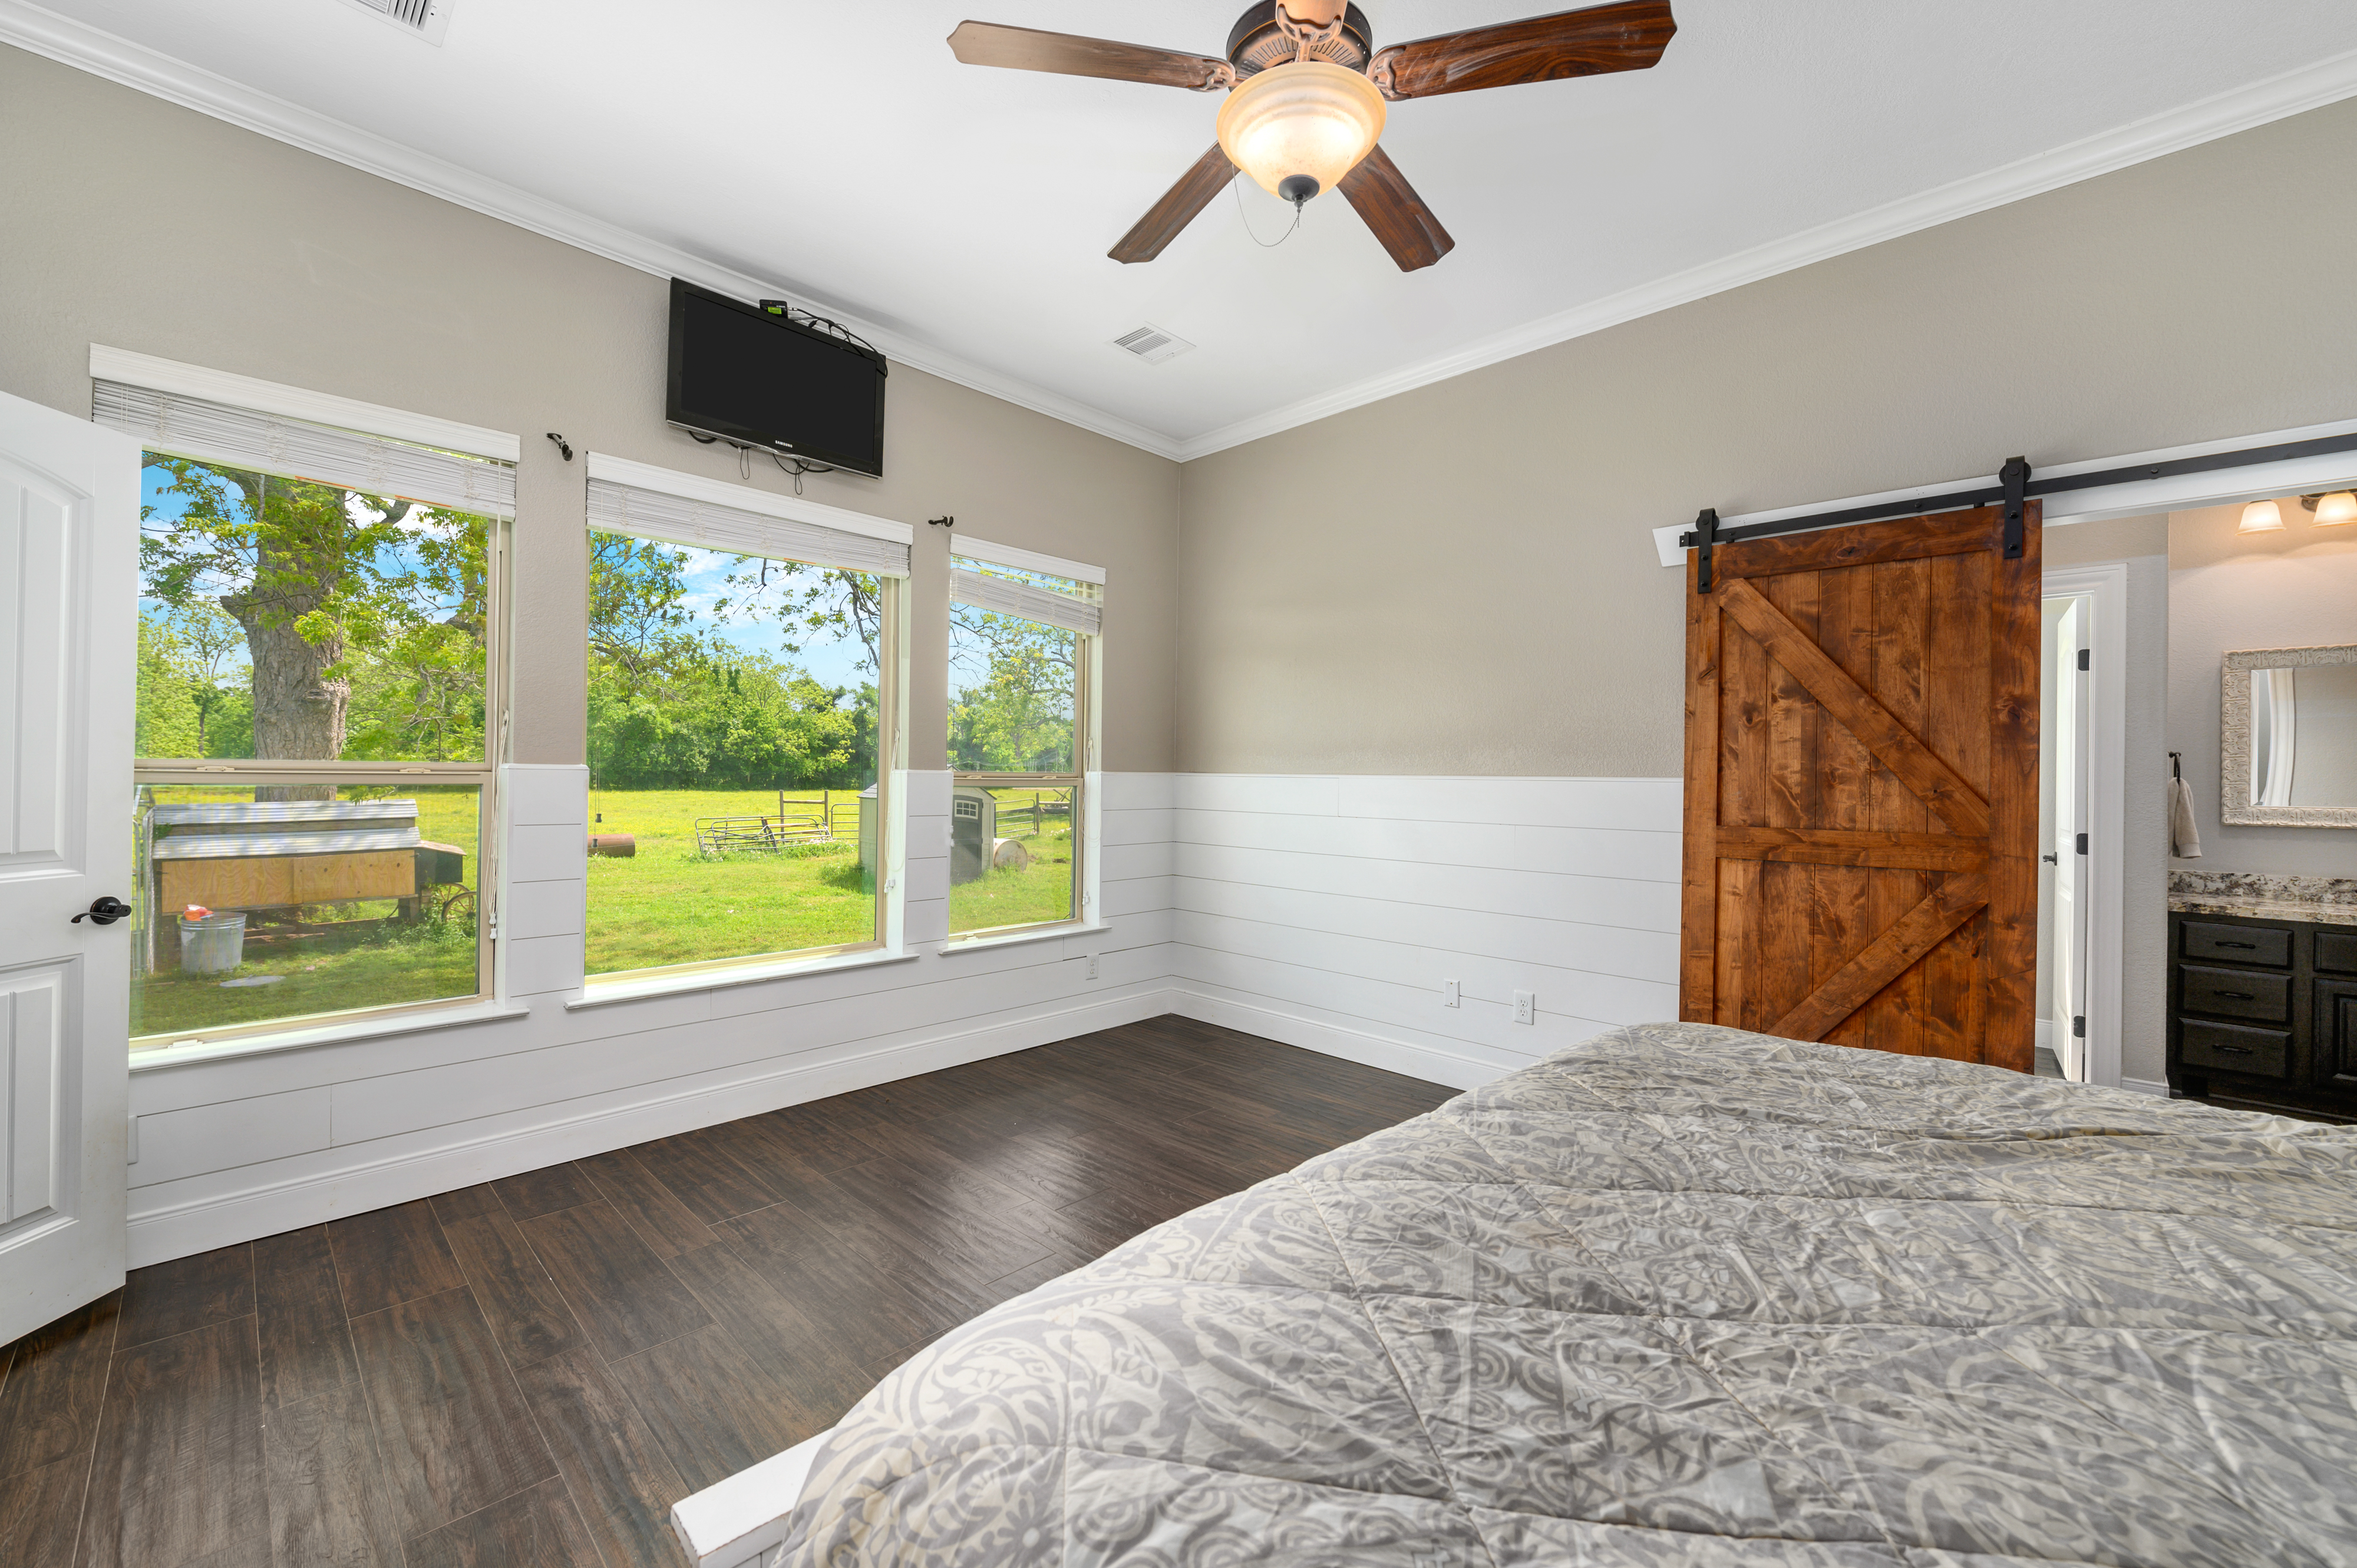 Custom Country Home with Acreage in Sealy - Image 27 of 46